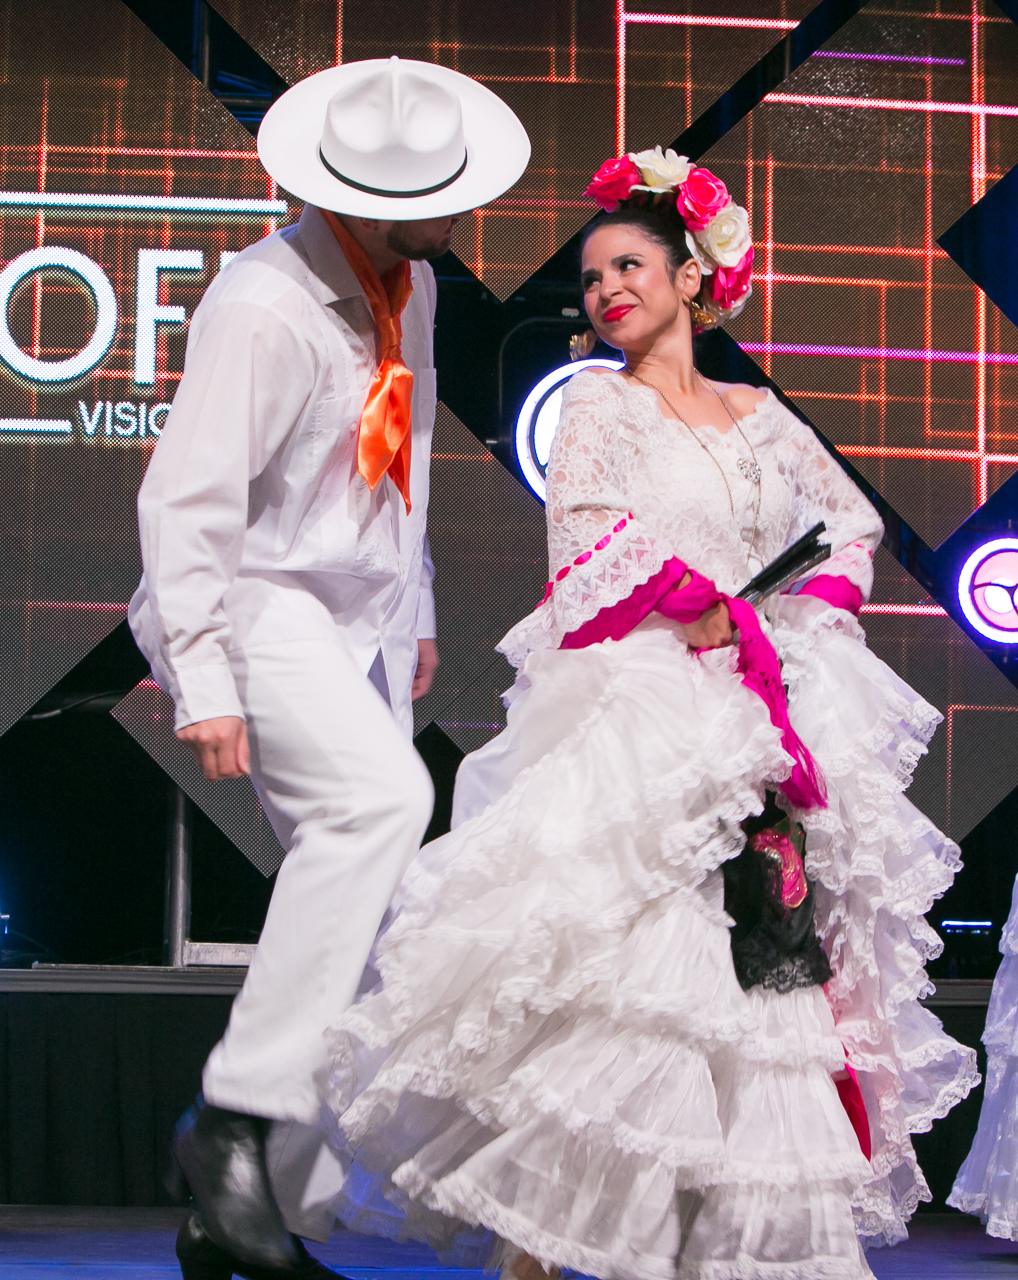 These traditional folklorico dancers provide morning inspiration for the corporate event attendees.